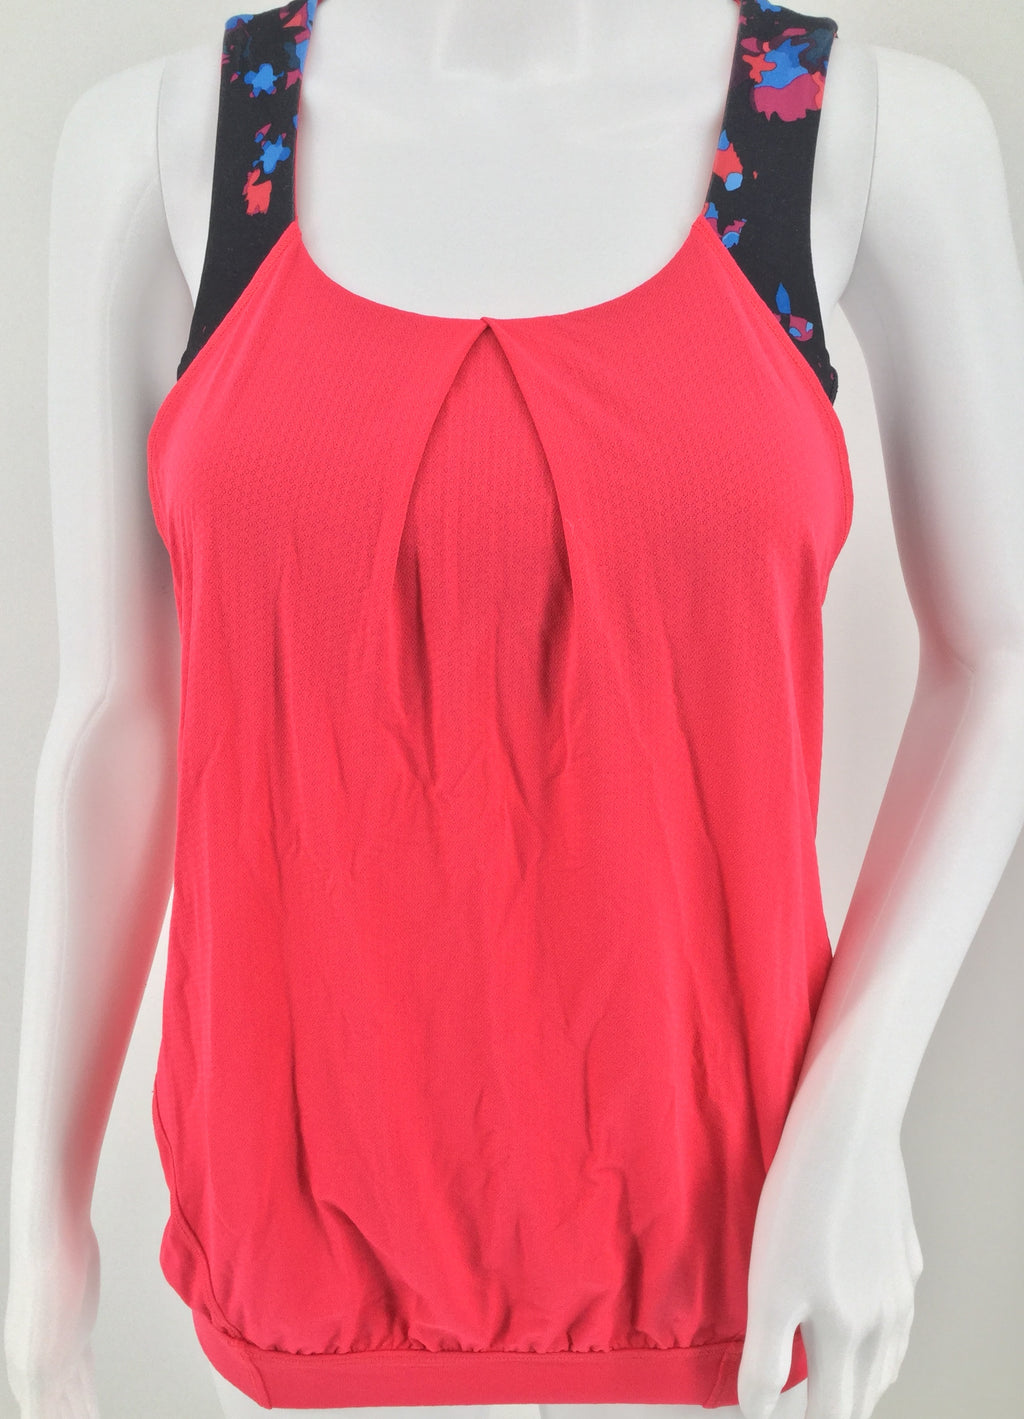 Lulu Lemon Coral Athletic Tank Top Size 4